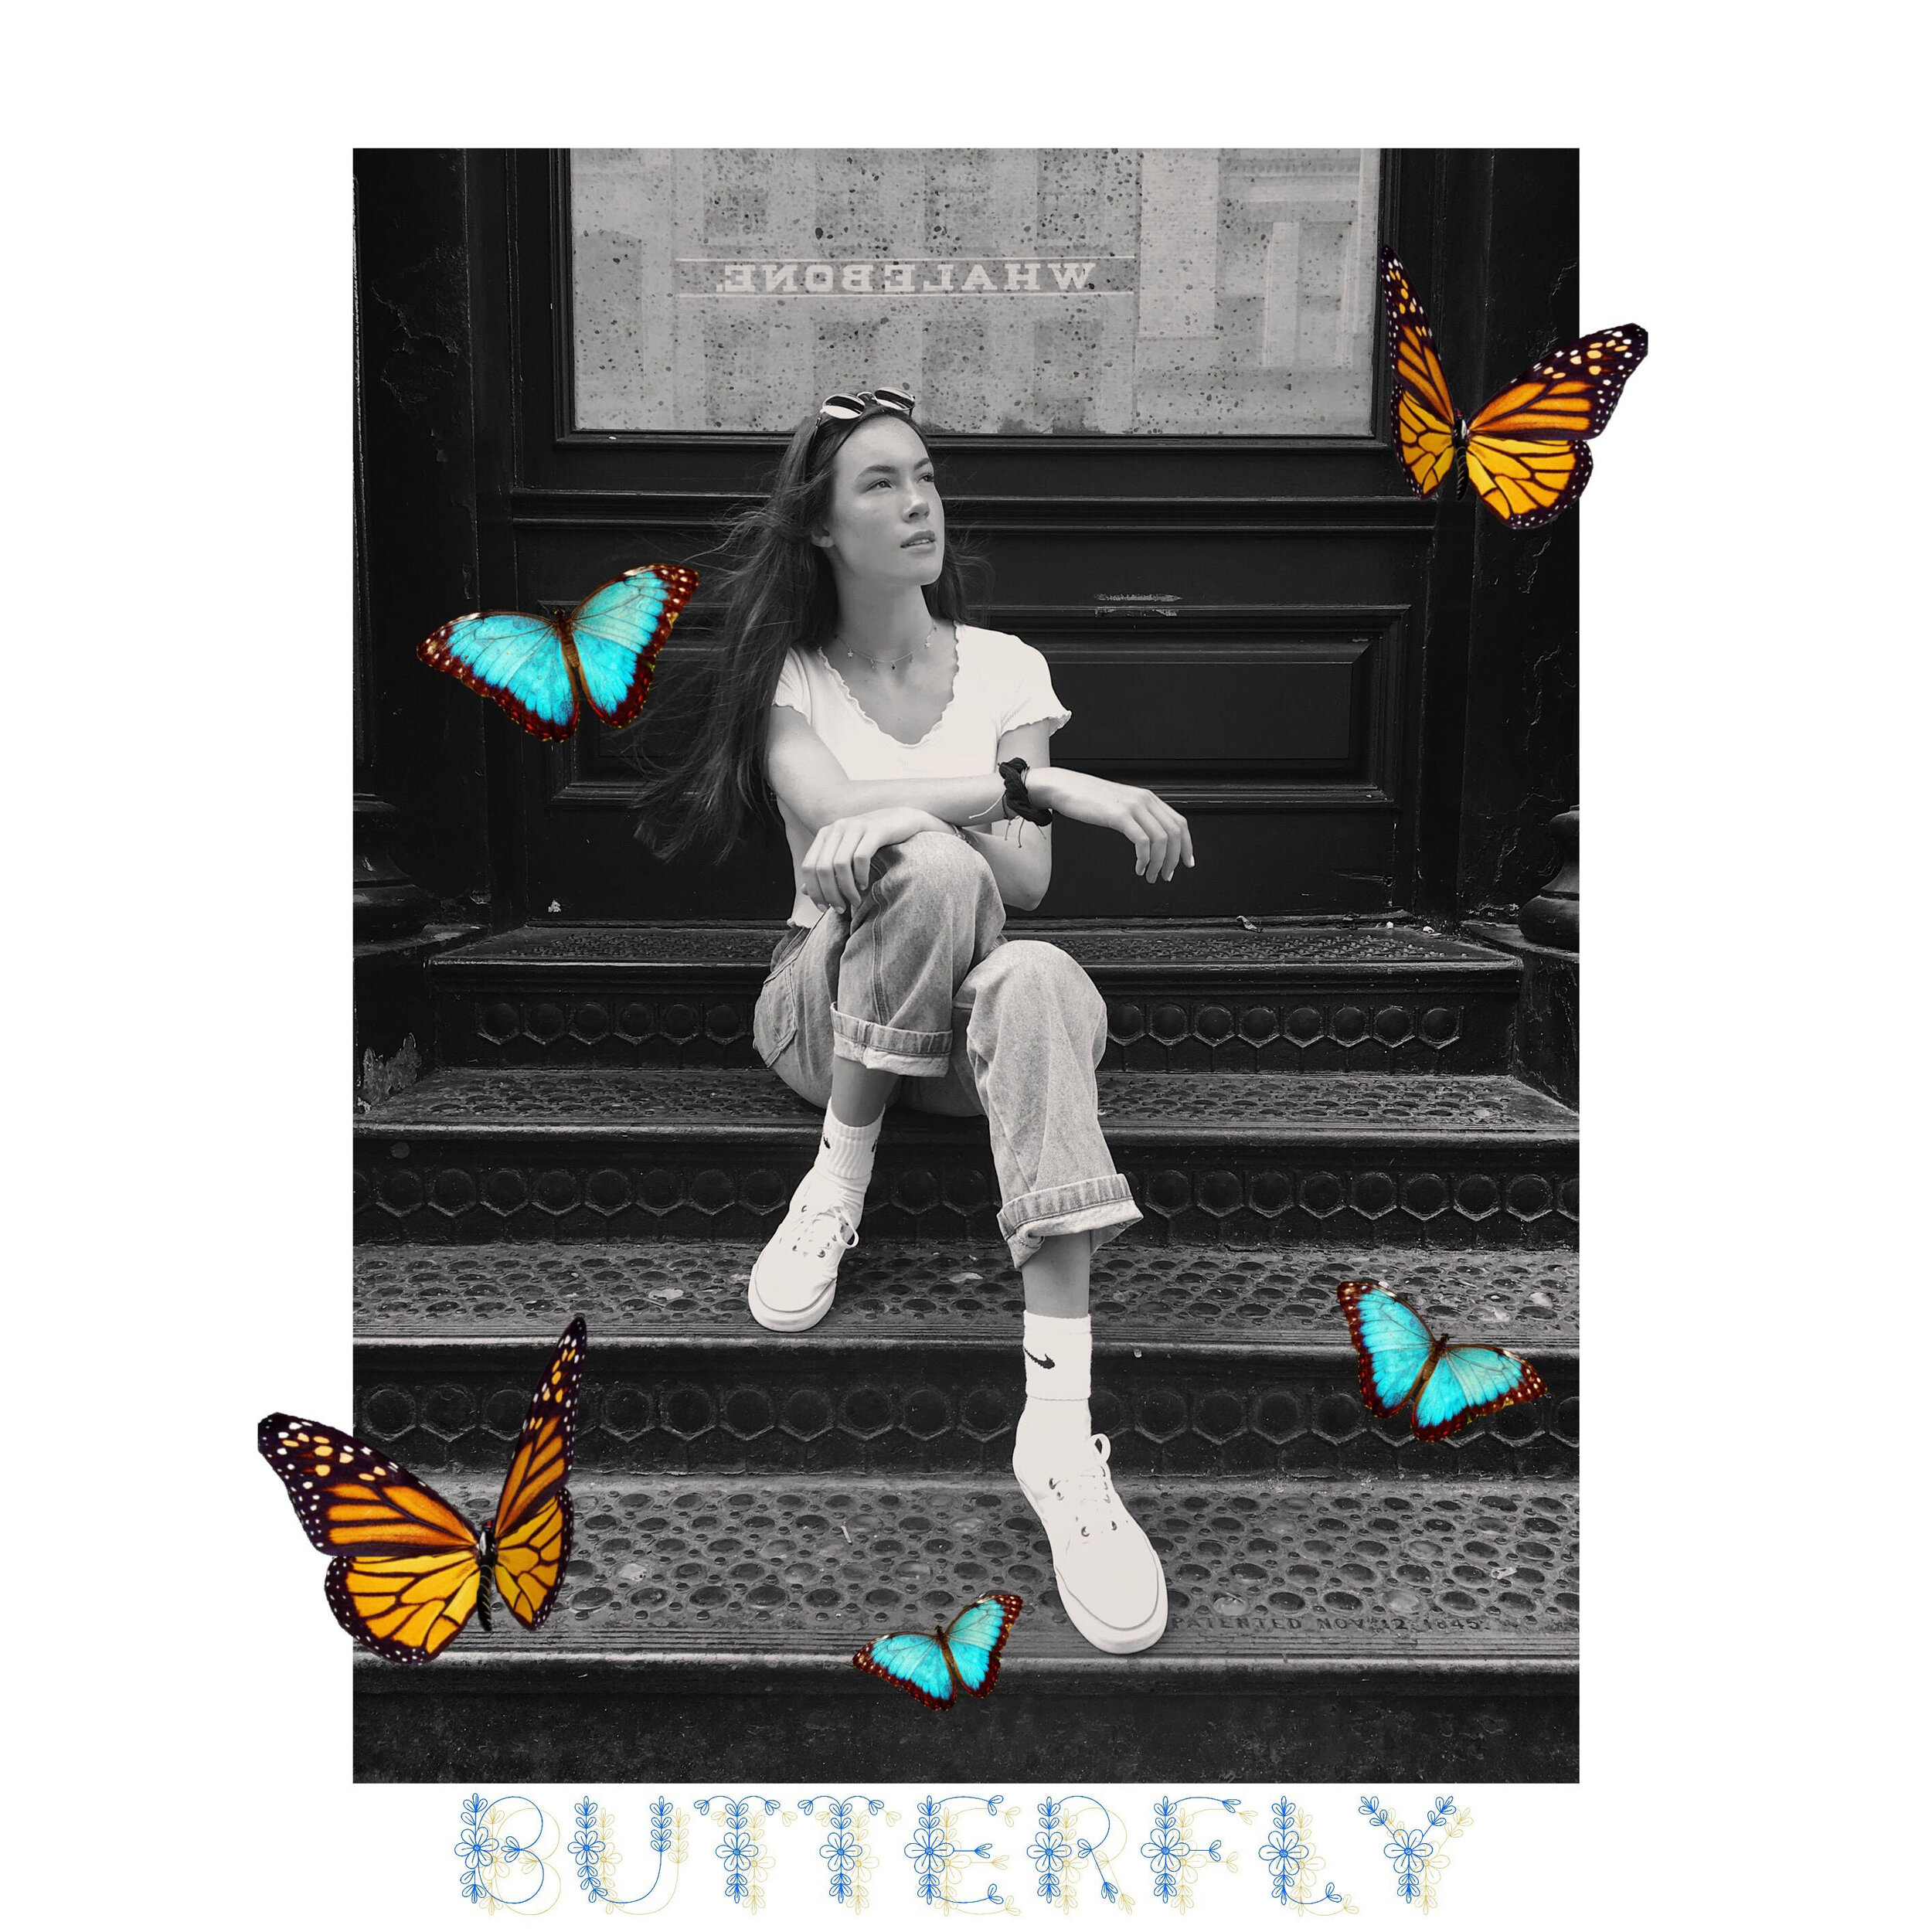 """Sophie Dennison - 11:15AM   Sophie is a 16 year old singer-songwriter from Morton, Illinois. She loves playing piano, guitar, and singing in her free time. She has a song on SoundCloud called """"Butterfly"""" produced by Unspoken, written by Sophie Dennison."""